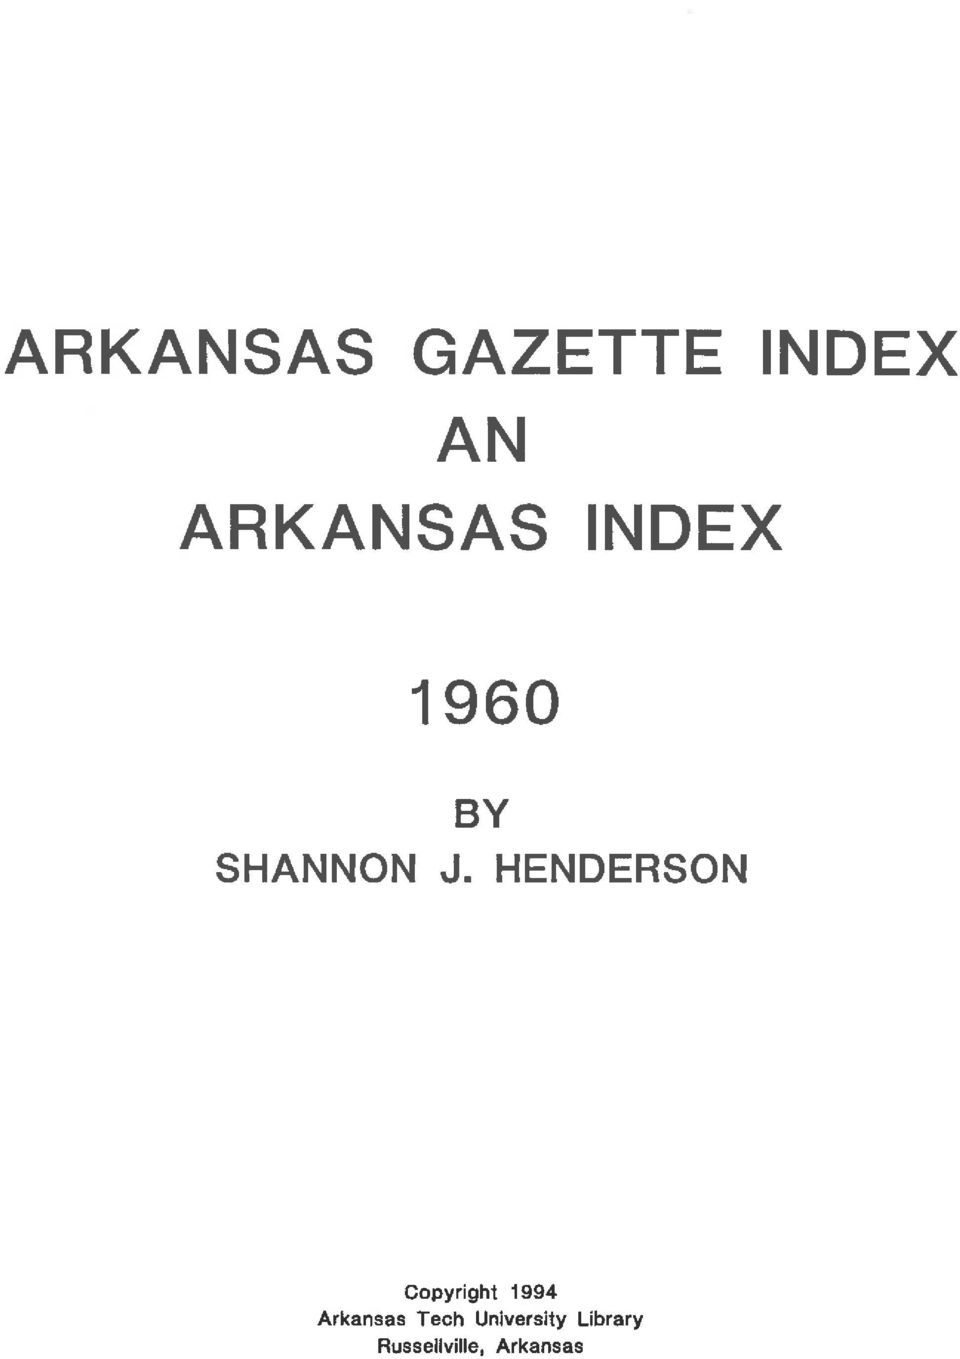 HENDERSON Copyright 1994 Arkansas